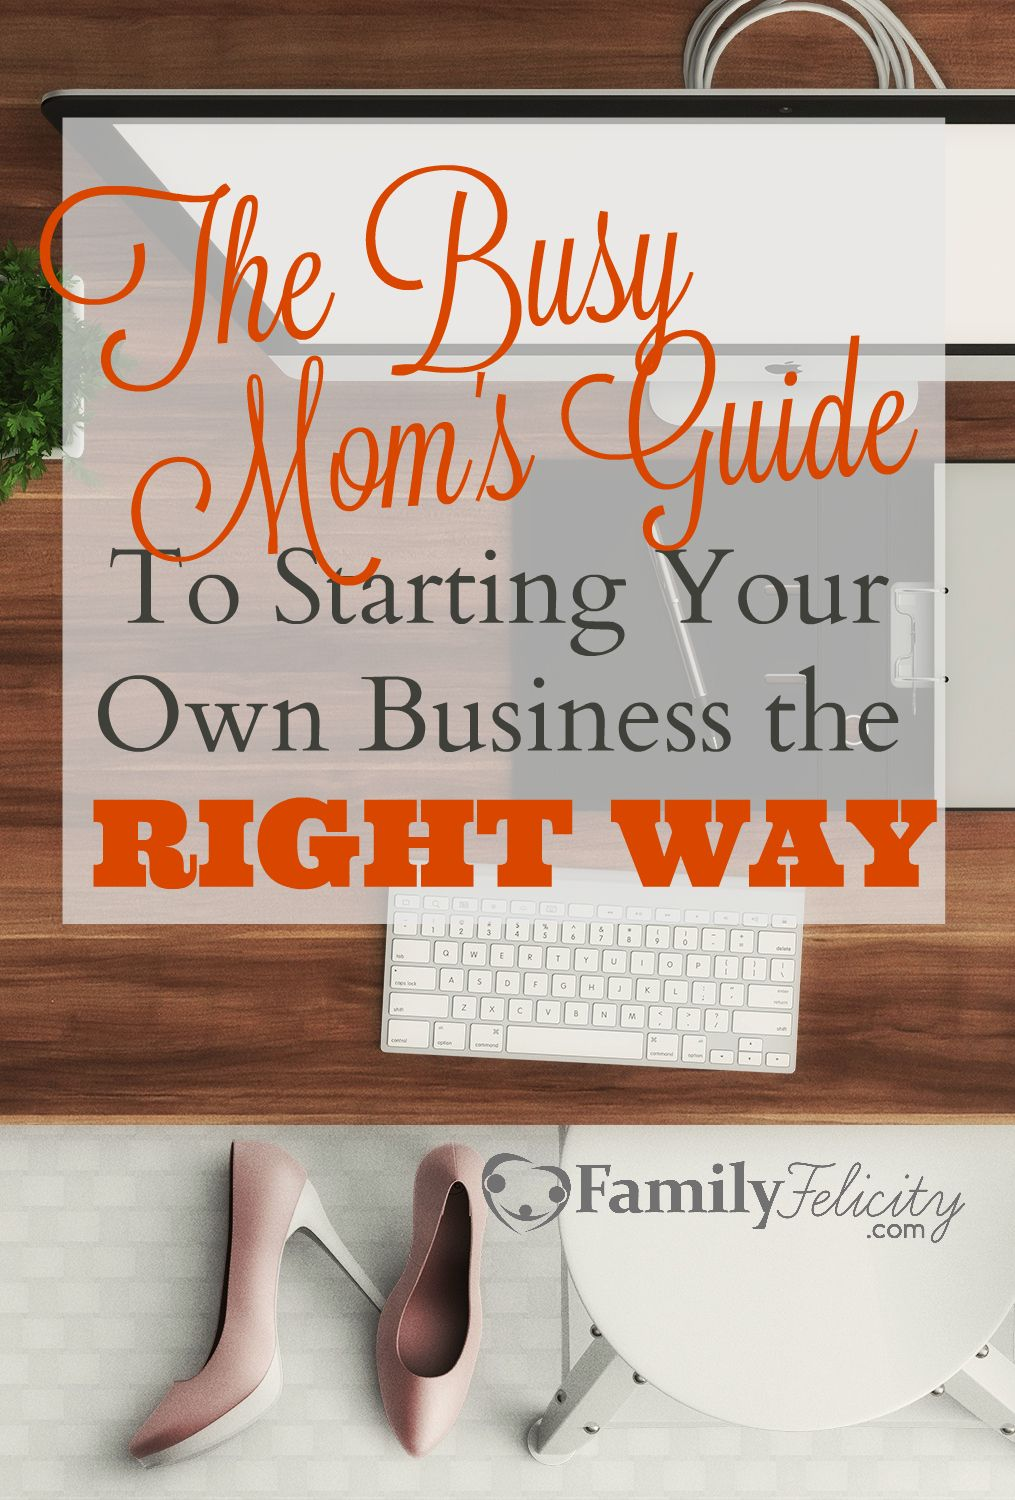 Follow this plan to set your business up for real success!